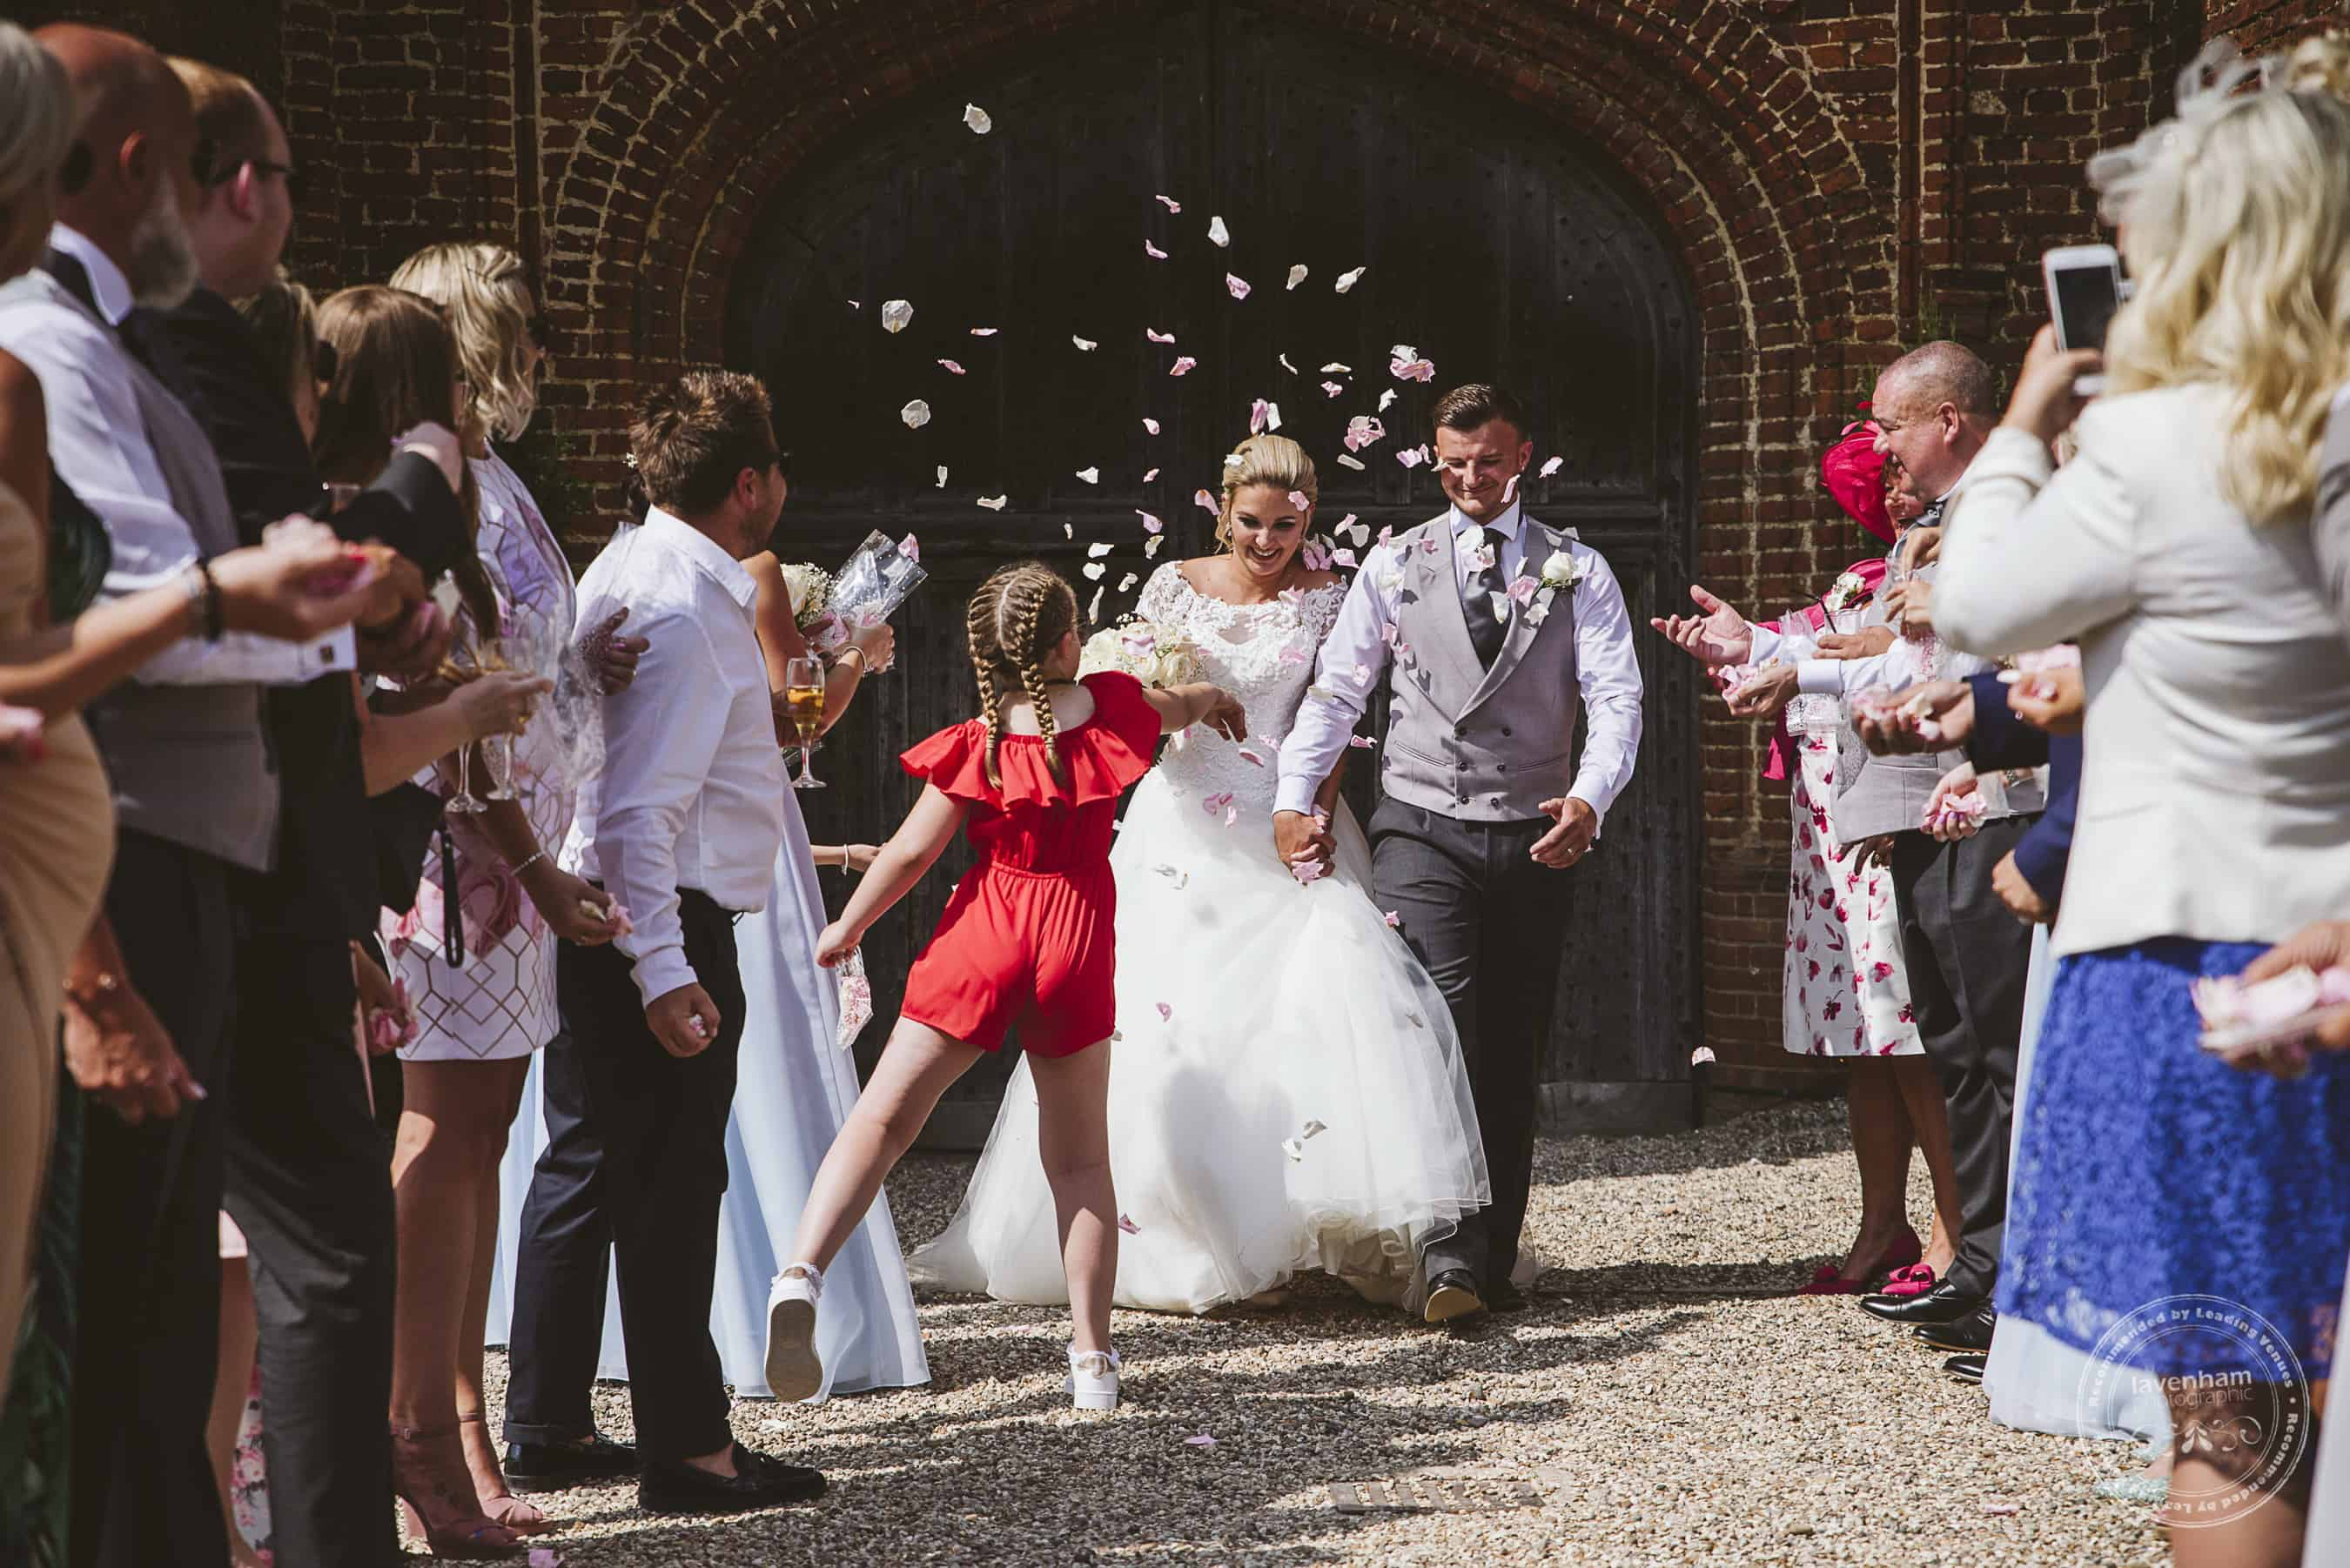 030618 Leez Priory Wedding Photography Lavenham Photographic 059